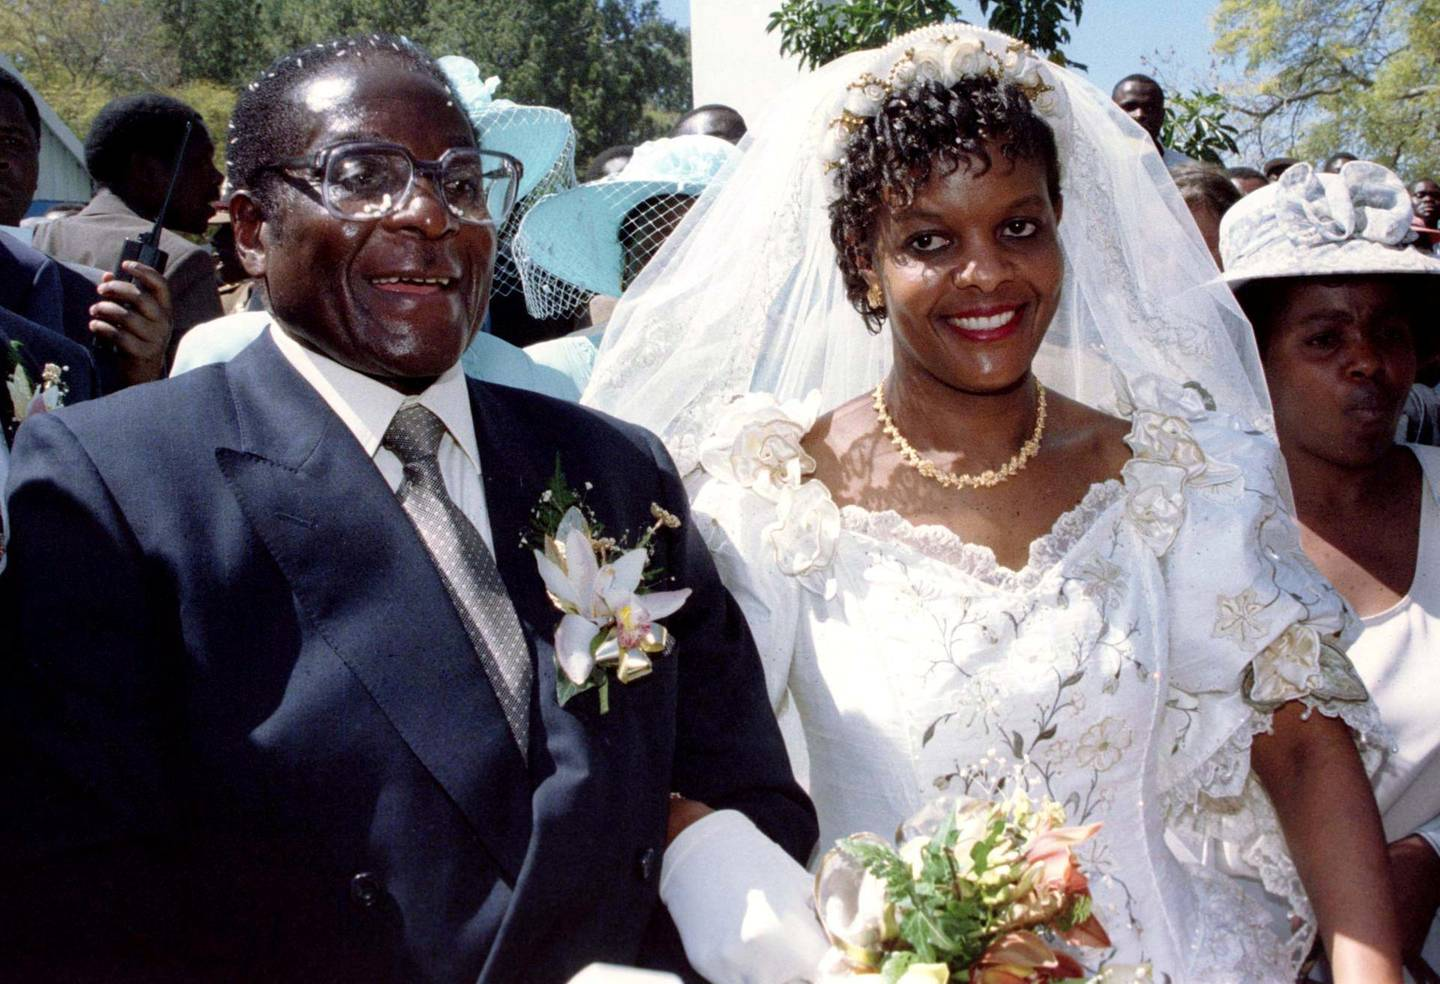 FILE PHOTO: President Robert Mugabe and new wife Grace leave the Kutama Catholic Church in Zimbabwe August 17, 1996 after exchanging their wedding vows. REUTERS/Howard Burditt/File Photo